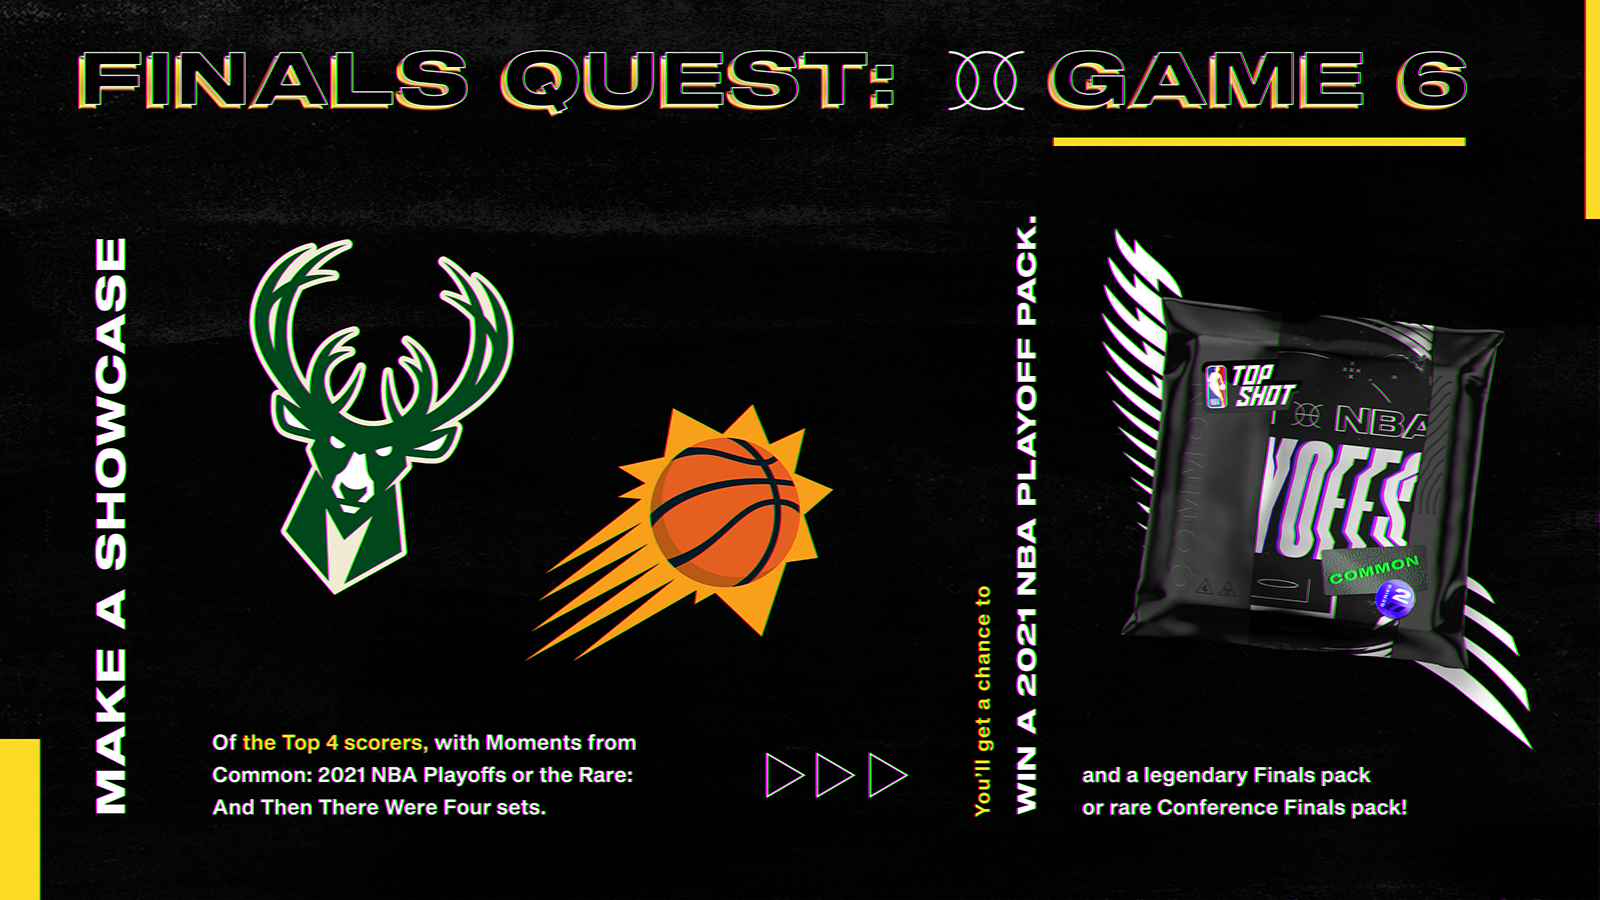 Game 6: The Bucks look to close out the Suns on their home floor